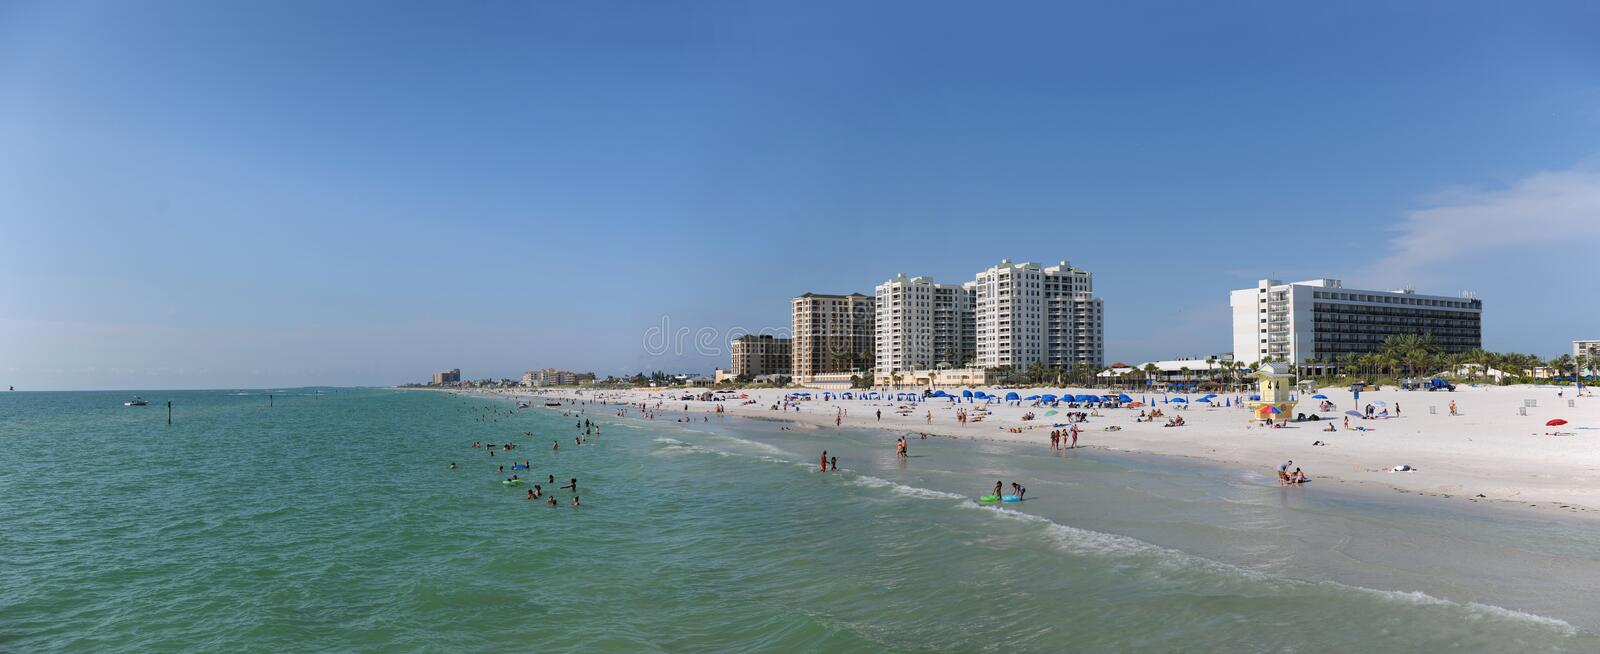 Clearwater Beach, Florida. Panoramic view of Clearwater BEach, Florida - Image stitched from several photographs stock photography